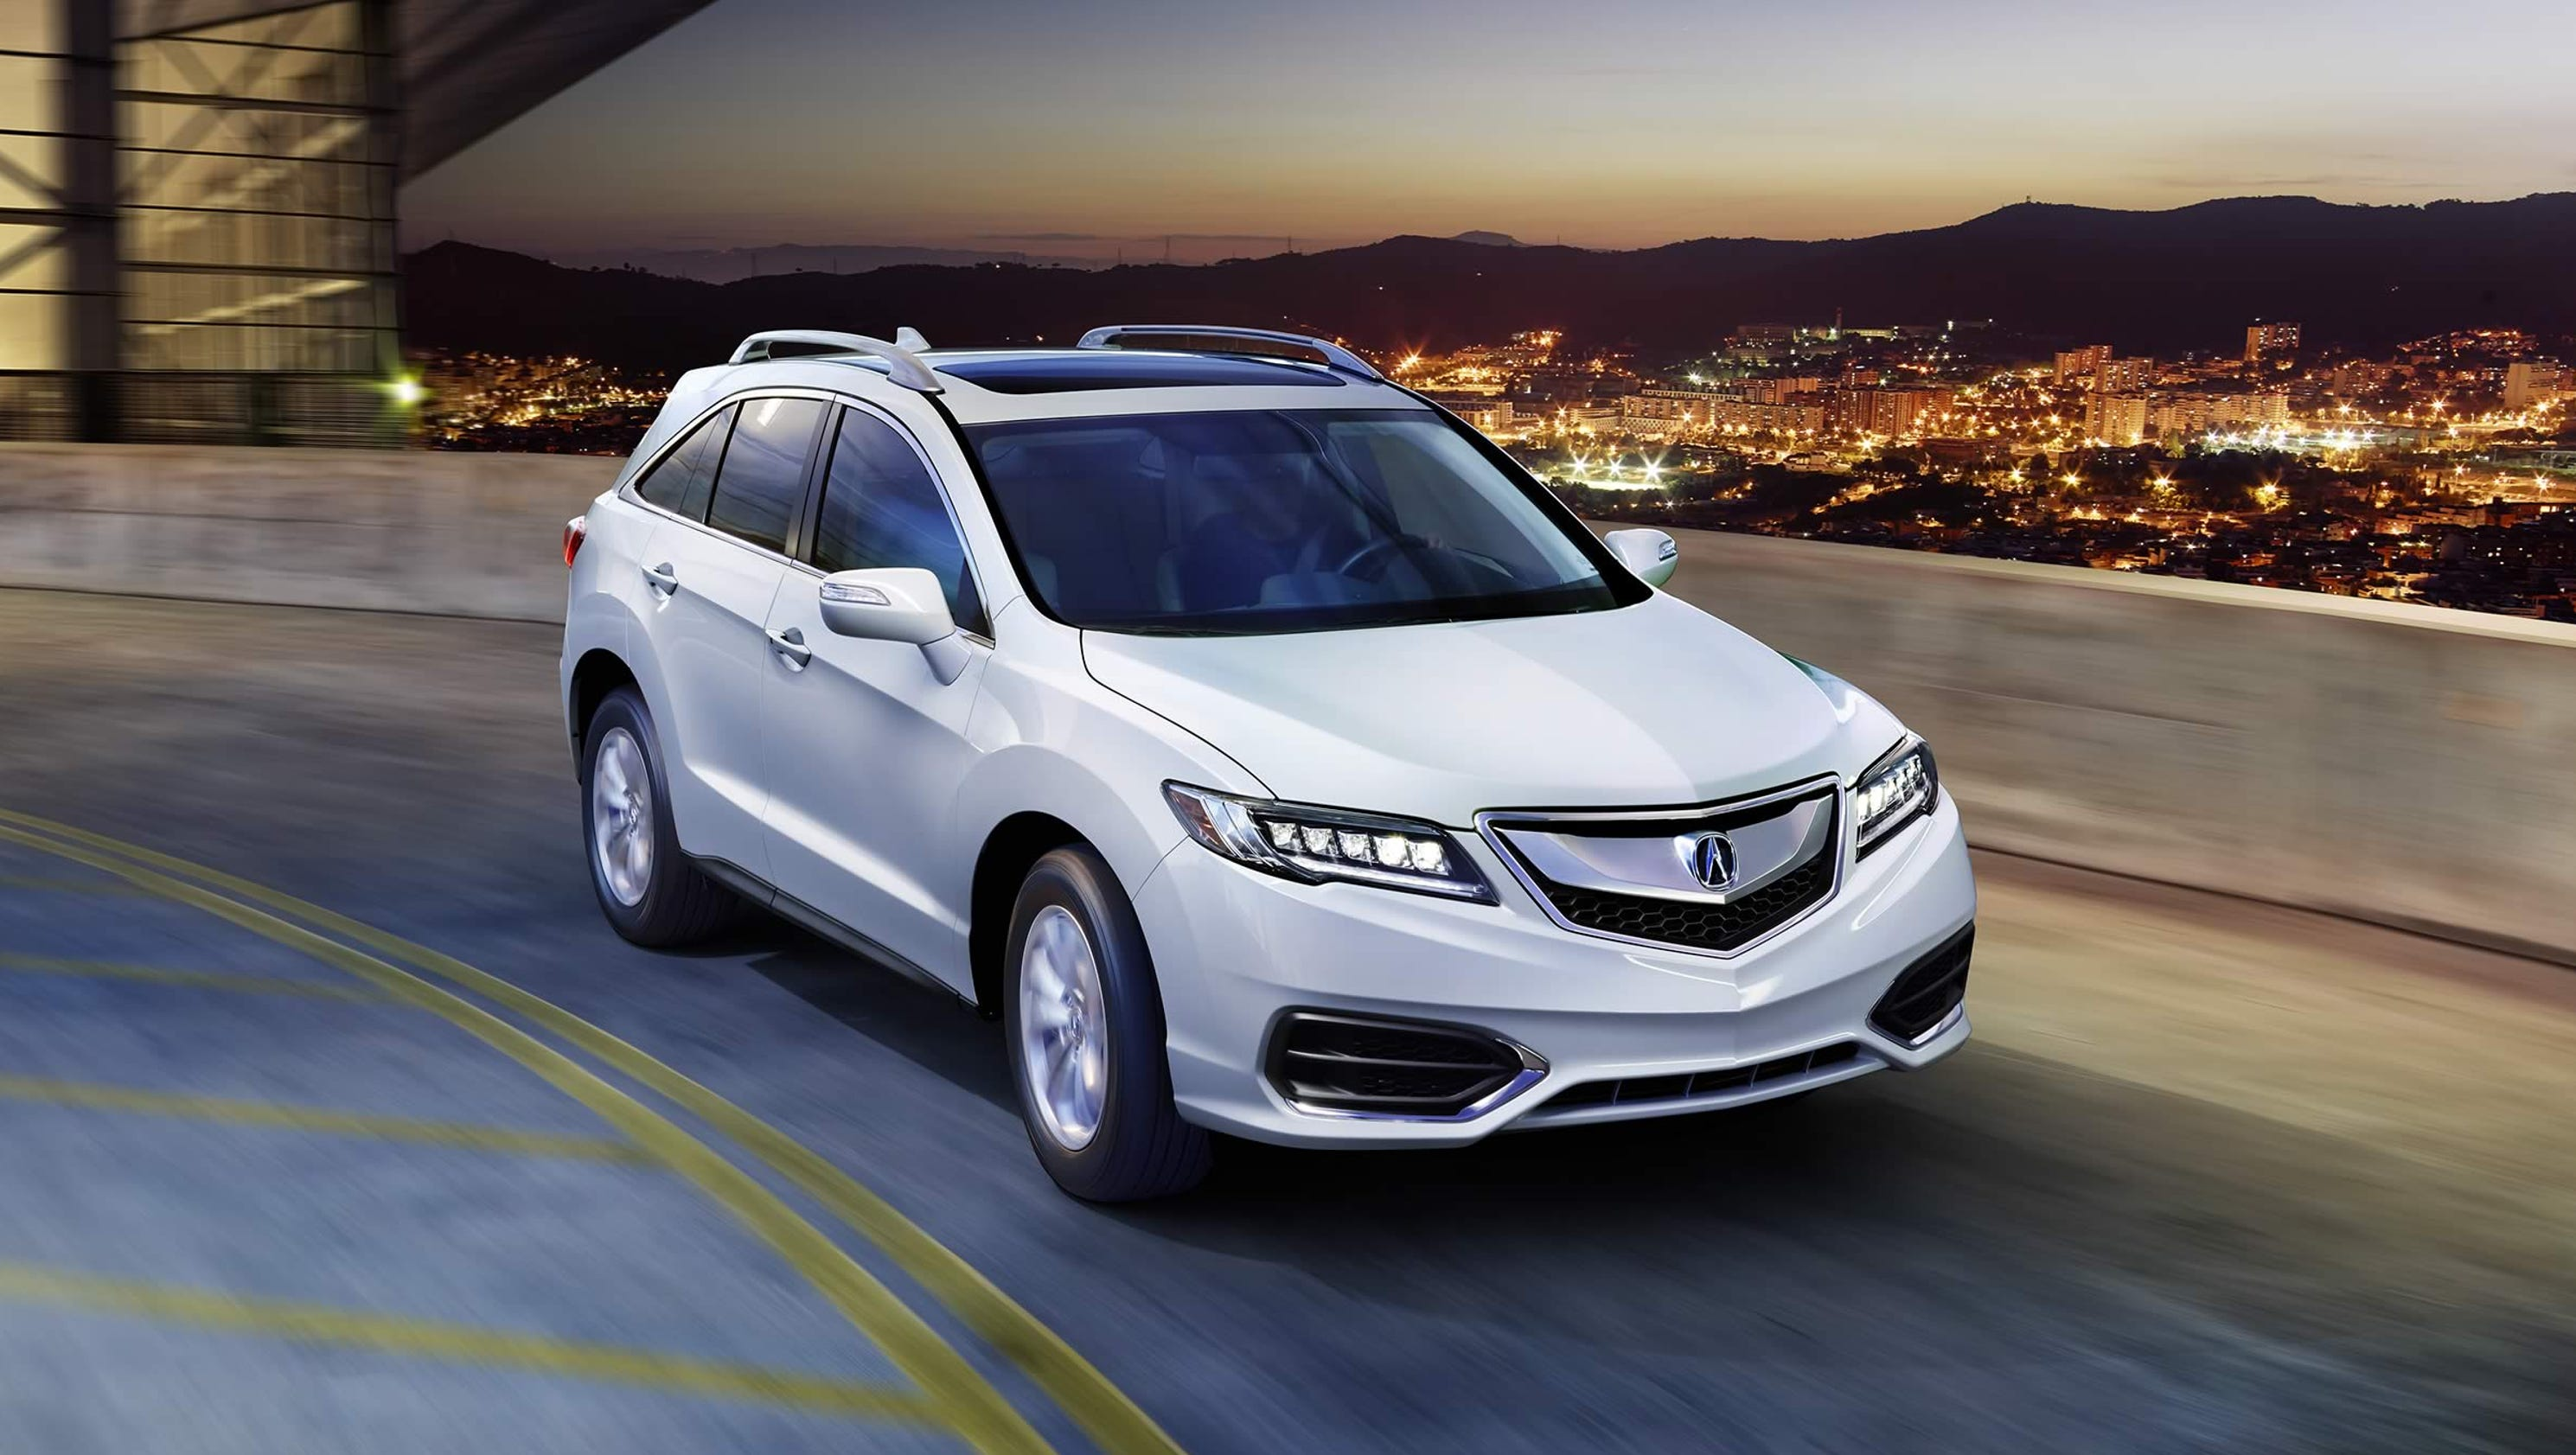 driving l mdx road elite frontal test rapha reviews created with review suv acura